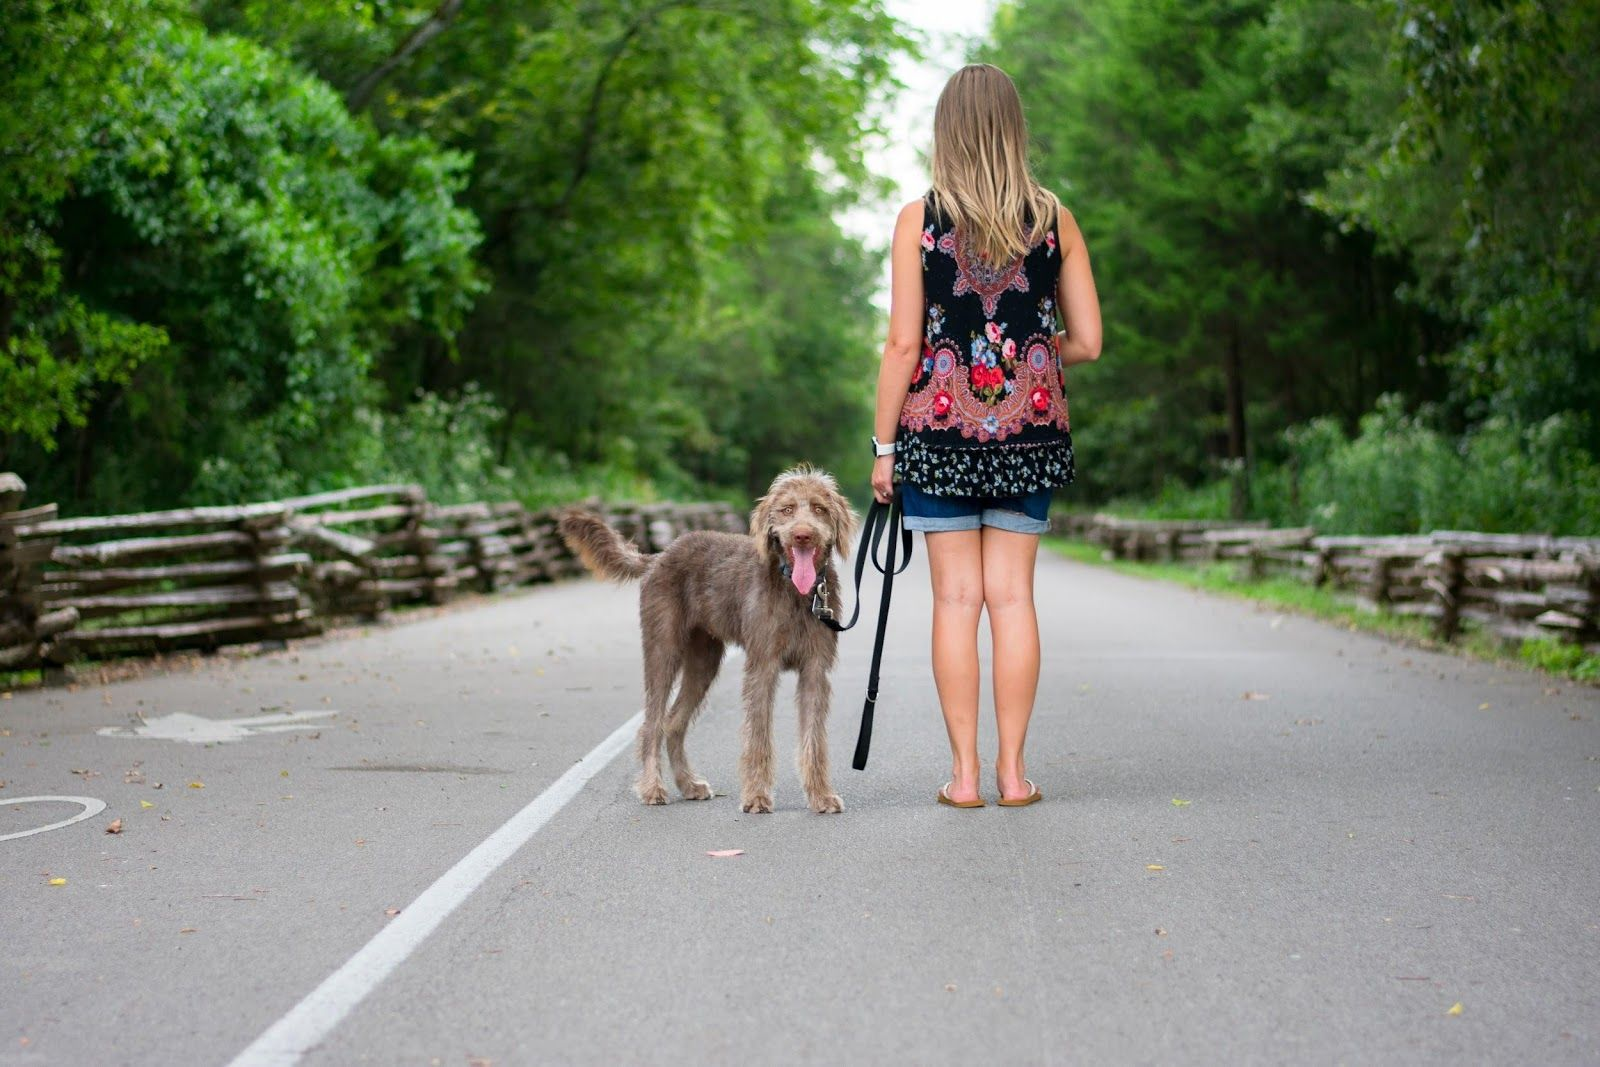 Physical activity - Taking dog for walk